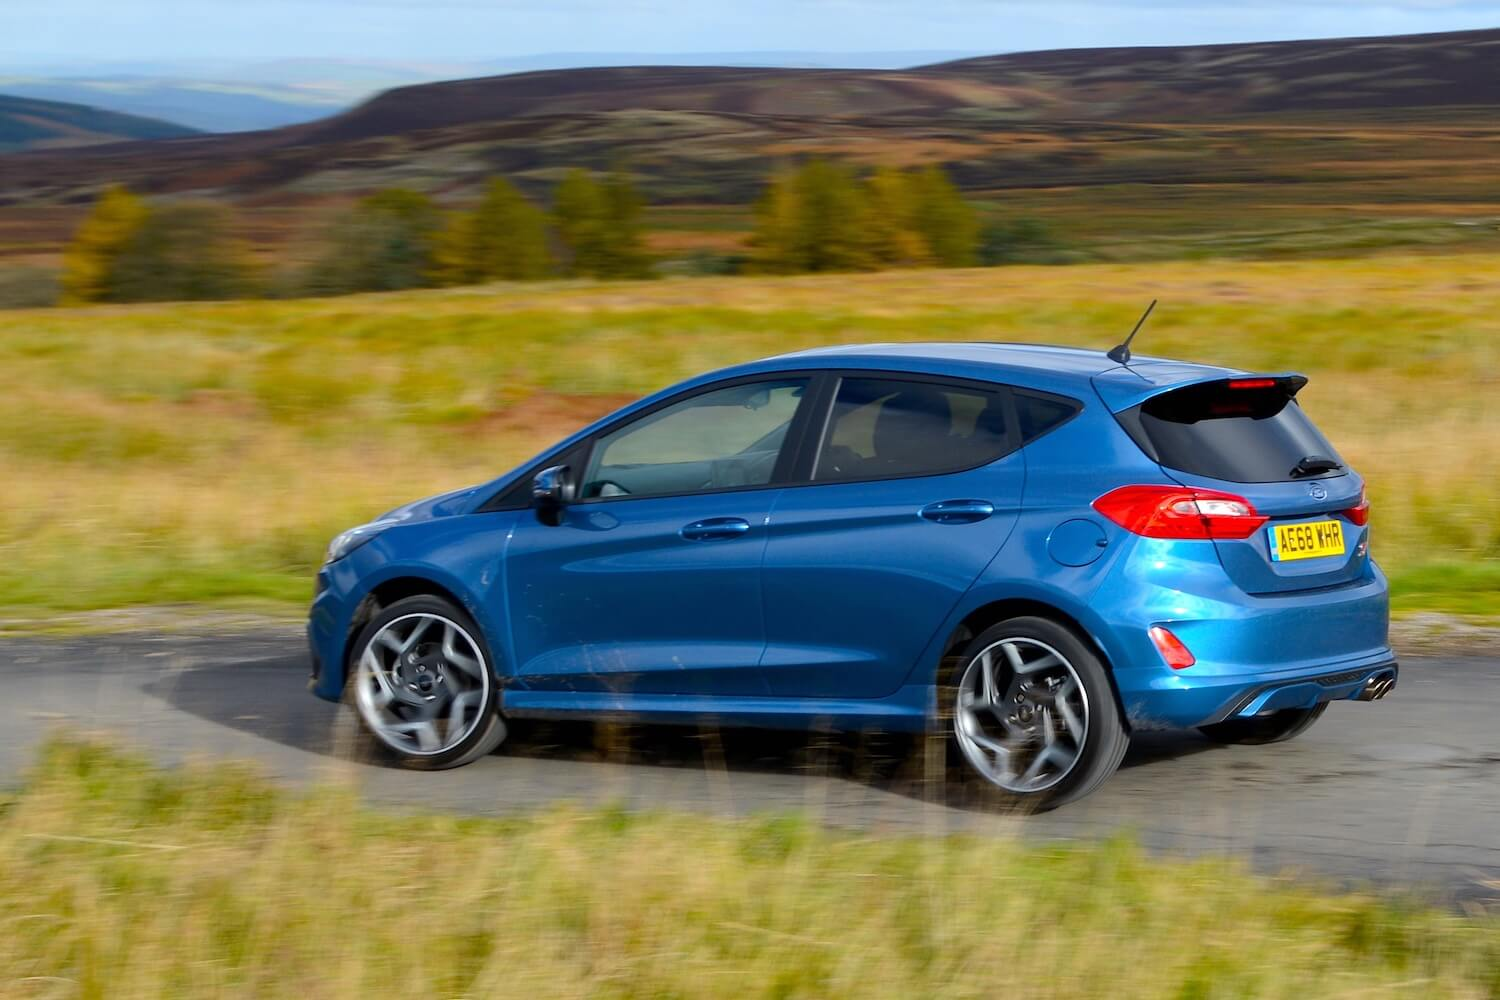 Ford Fiesta St 2 5 Door Review Greencarguide Co Uk